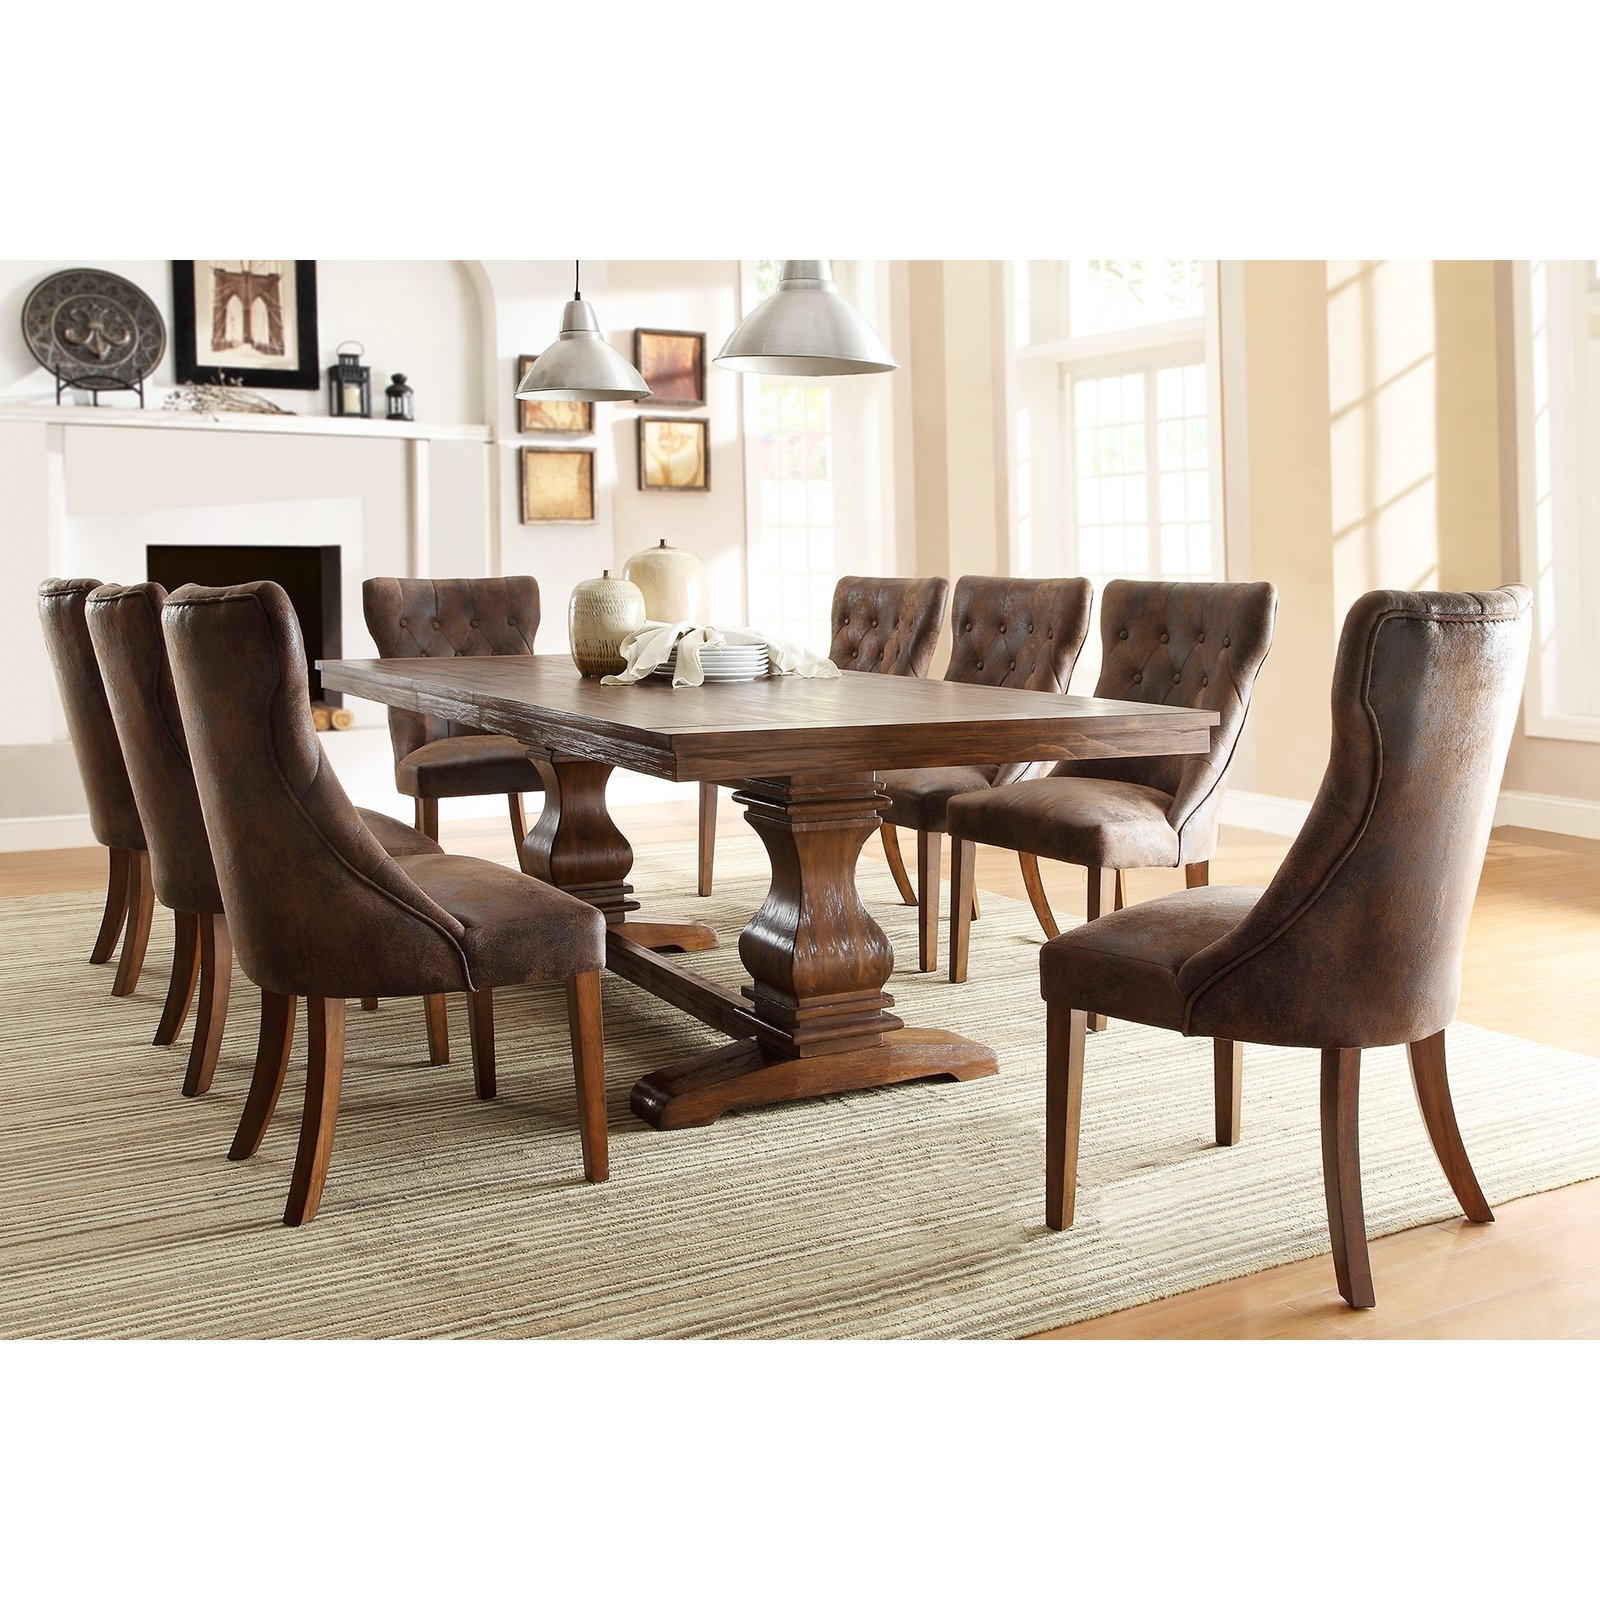 Oak Dining Tables Sets Inside Most Recent Weston Home Marie Louise 9 Piece Expandable Trestle Dining Table Set (View 24 of 25)